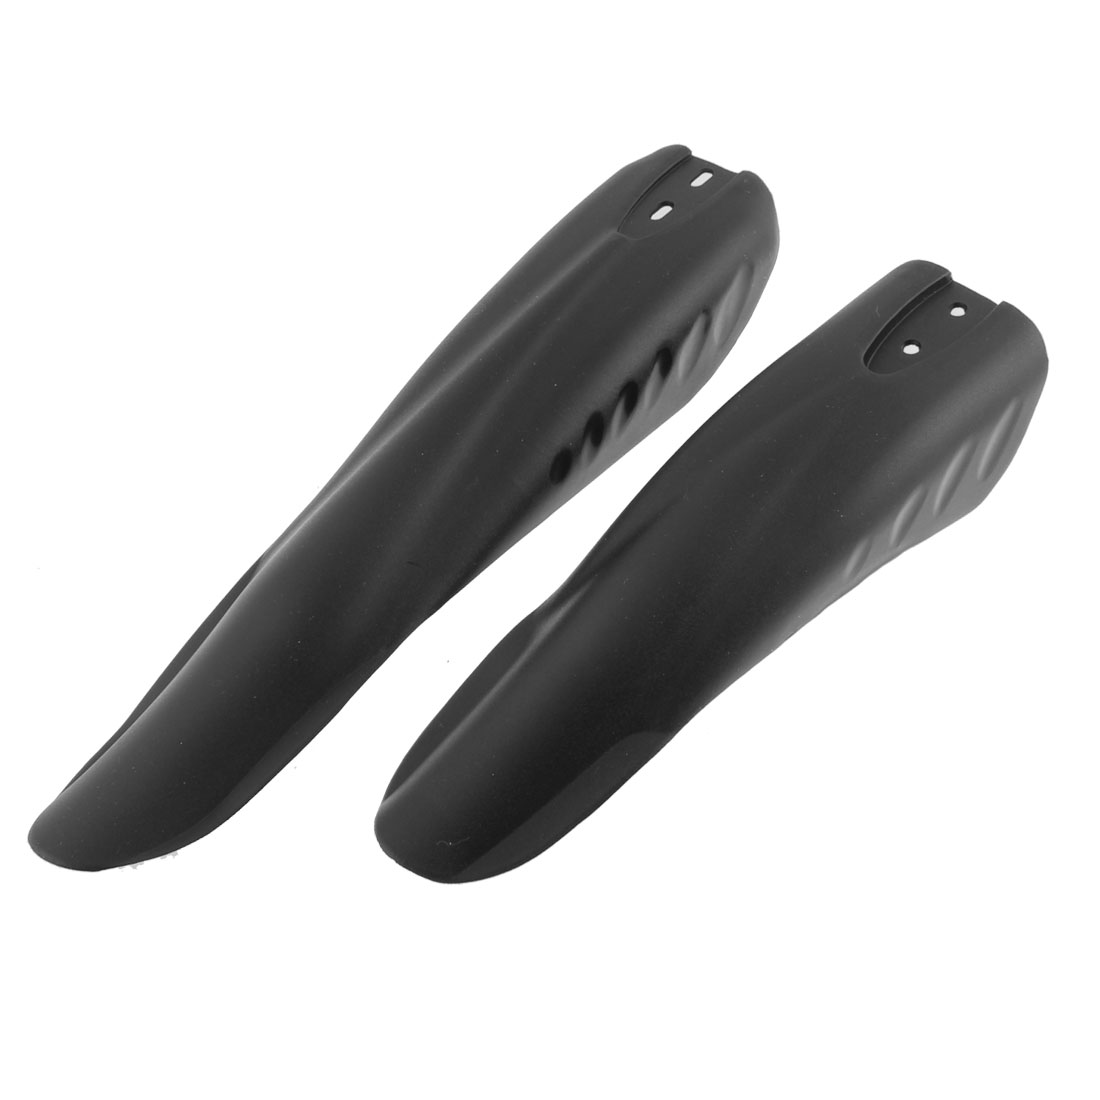 Mountain Bike Cycling Plastic Front Rear Mud Guard Fenders Black